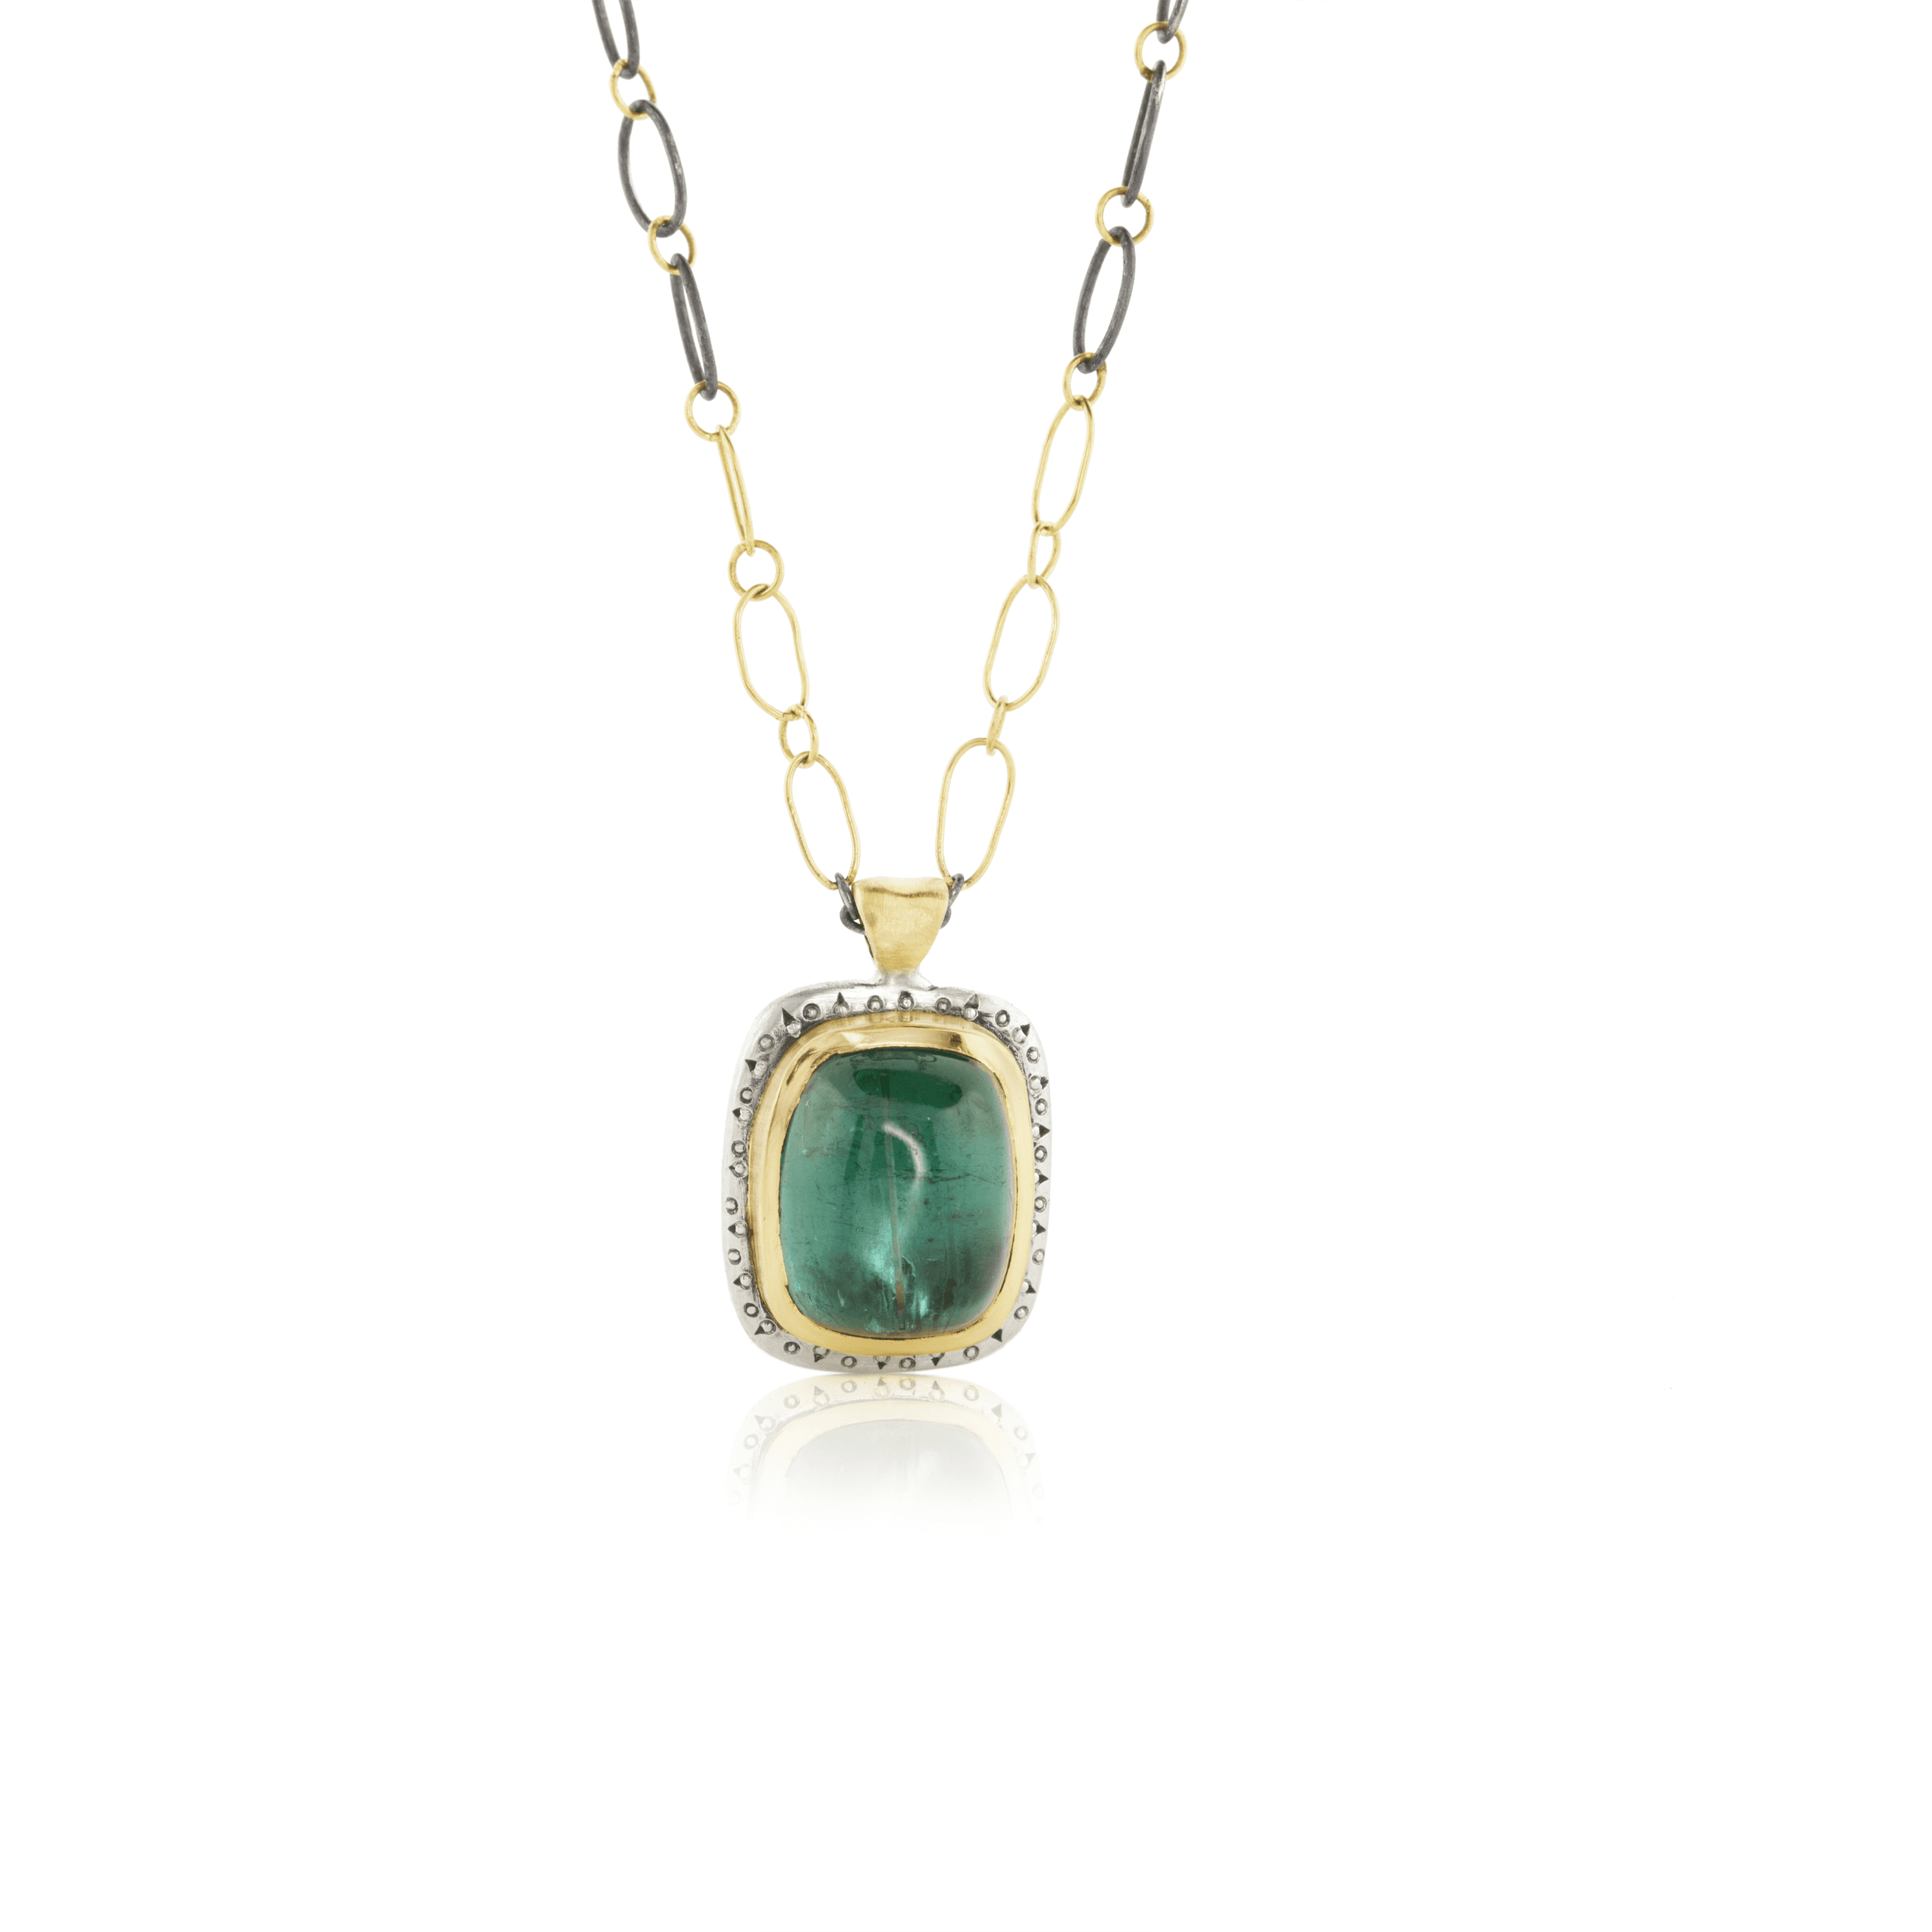 Green Tourmaline Necklace - Adel Chefridi - Mansoor Jewelers